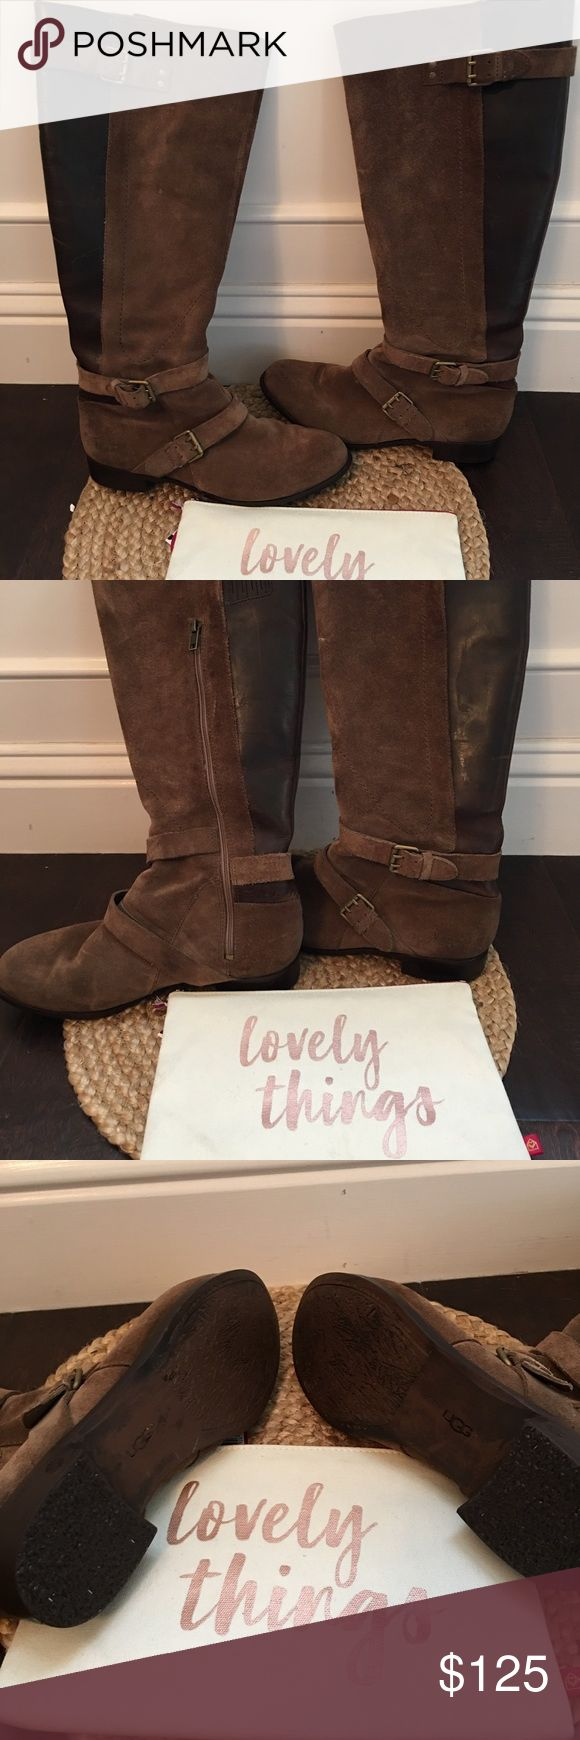 UGG Australia Darcie Brown Equestrian Boot Sz 8 UGG Brown Suede Leather Equestrian Style Boots Size 8. These boots have a lot of life still in them. The leather and suede are distressed and look oh so fashionable. The Heels just have been re soled by a local cobbler. Get these. UGG Shoes